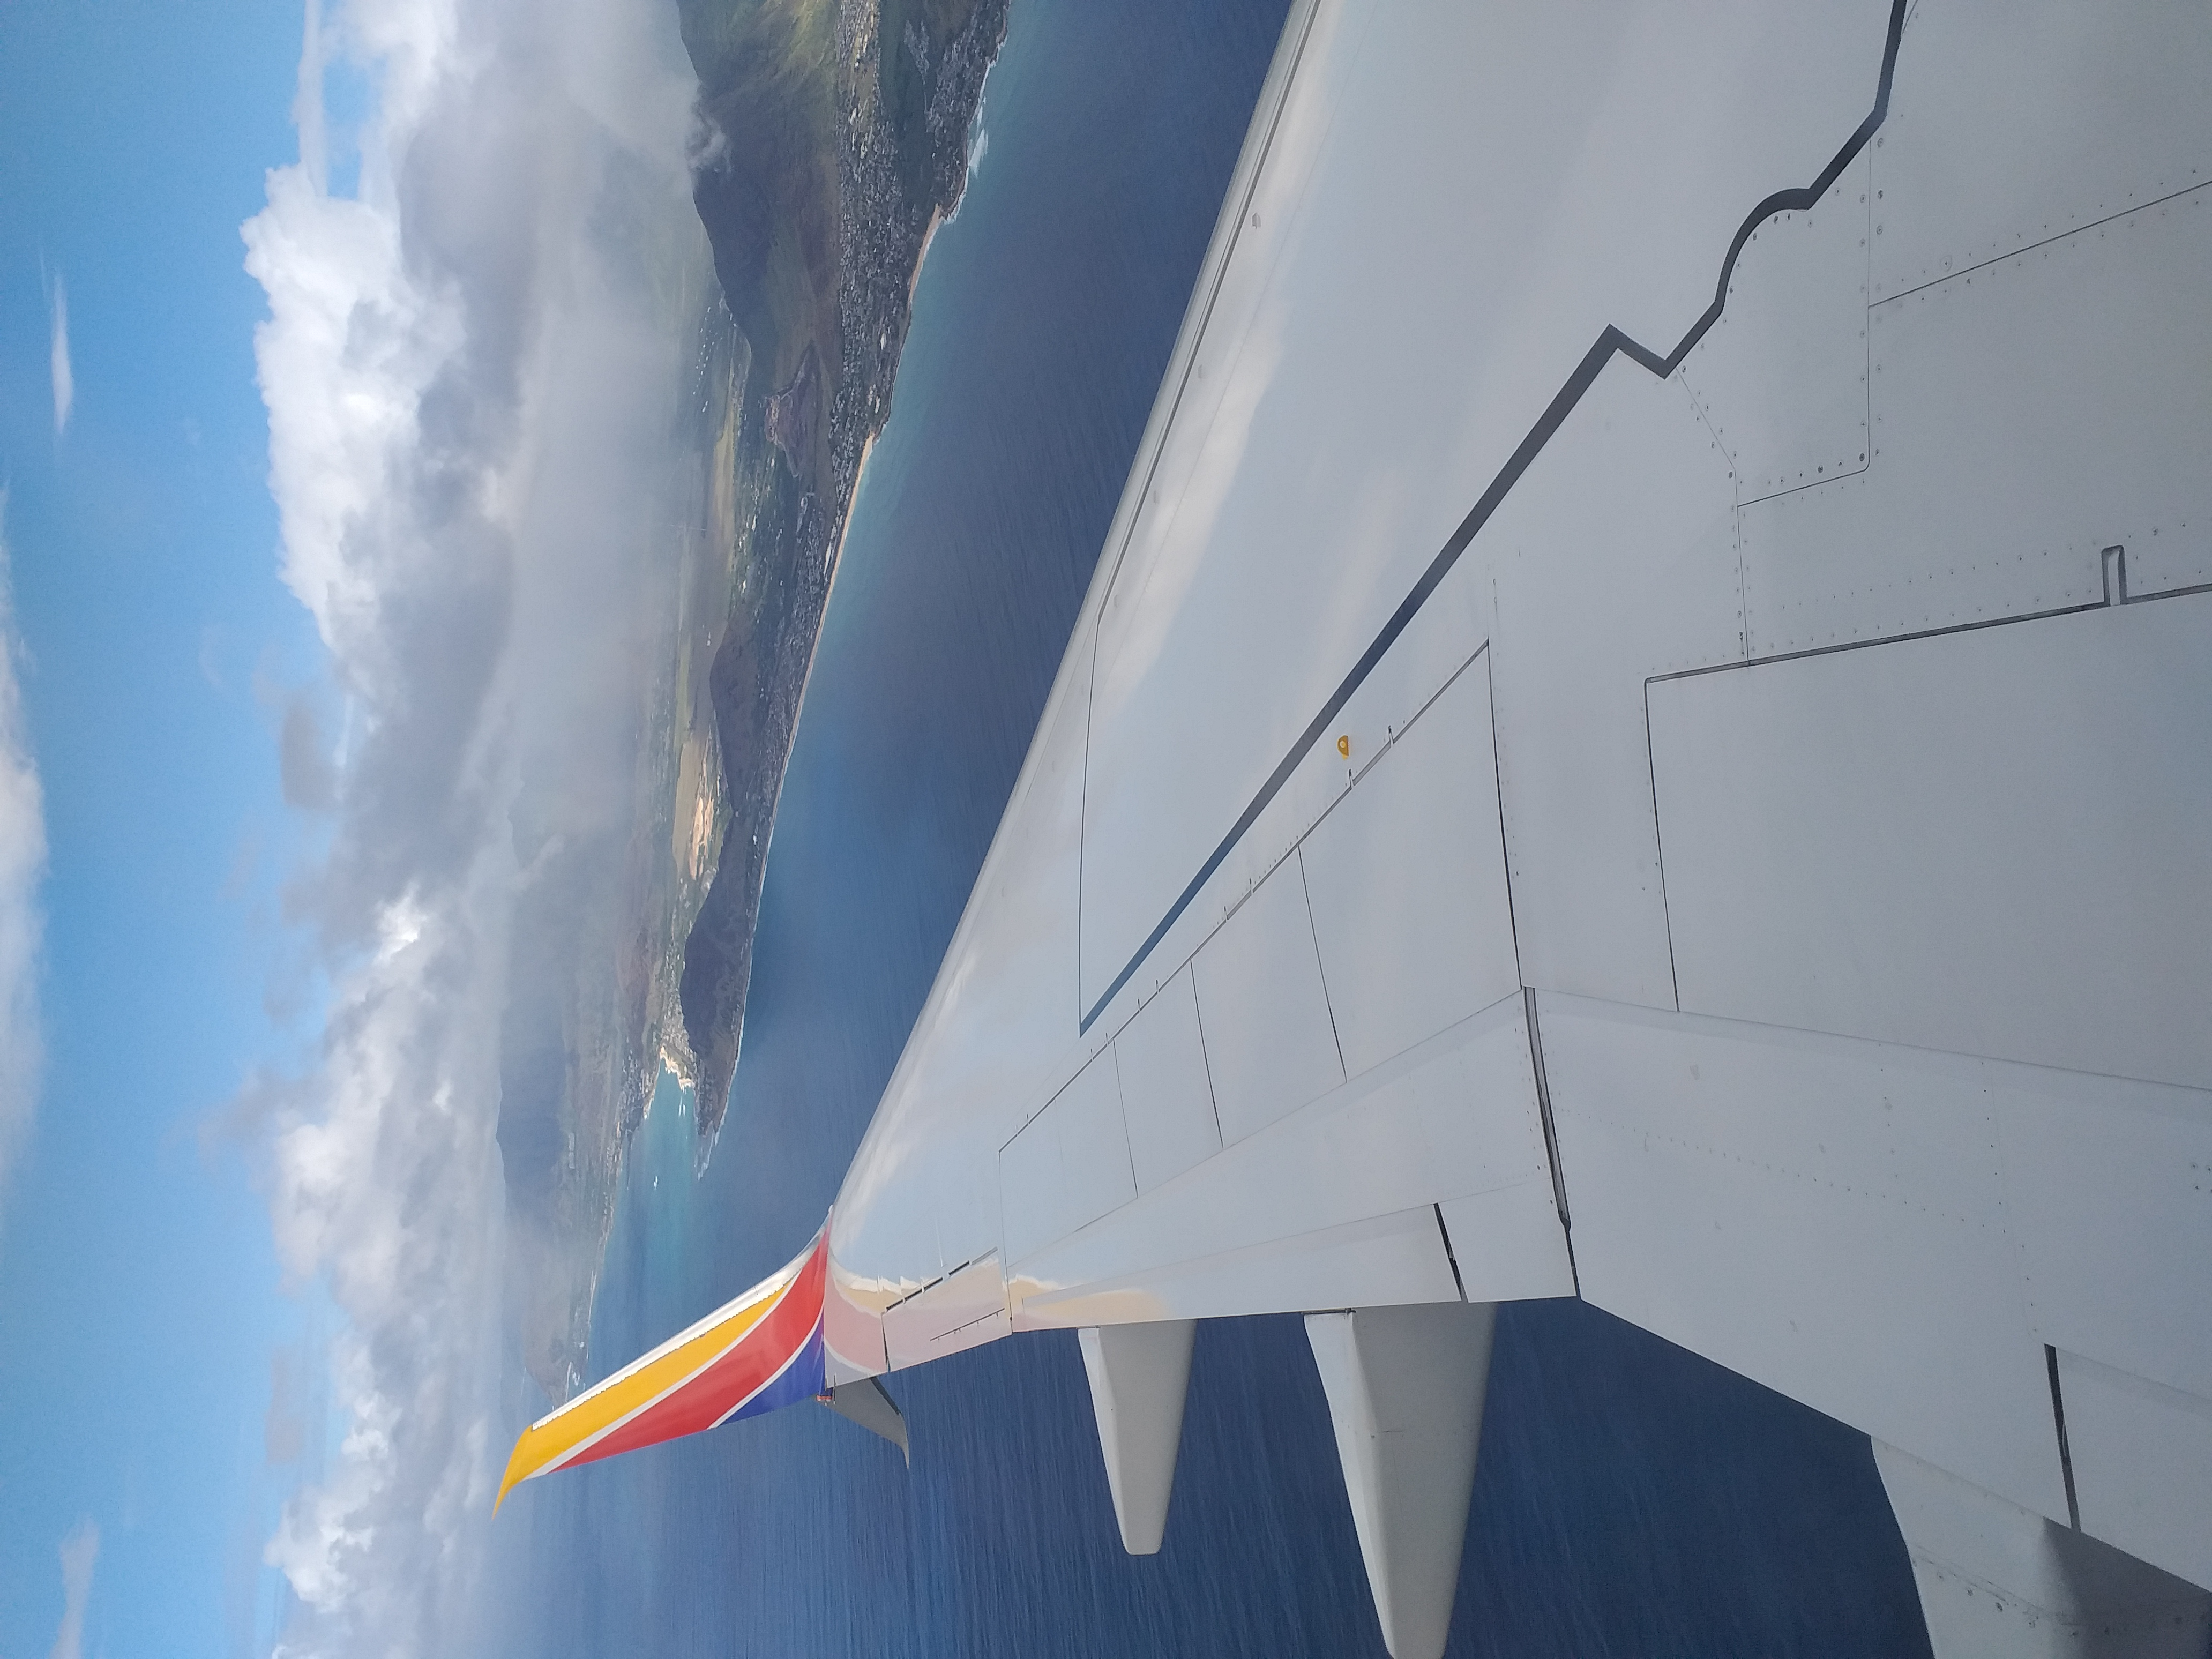 Vuelo a hawaii